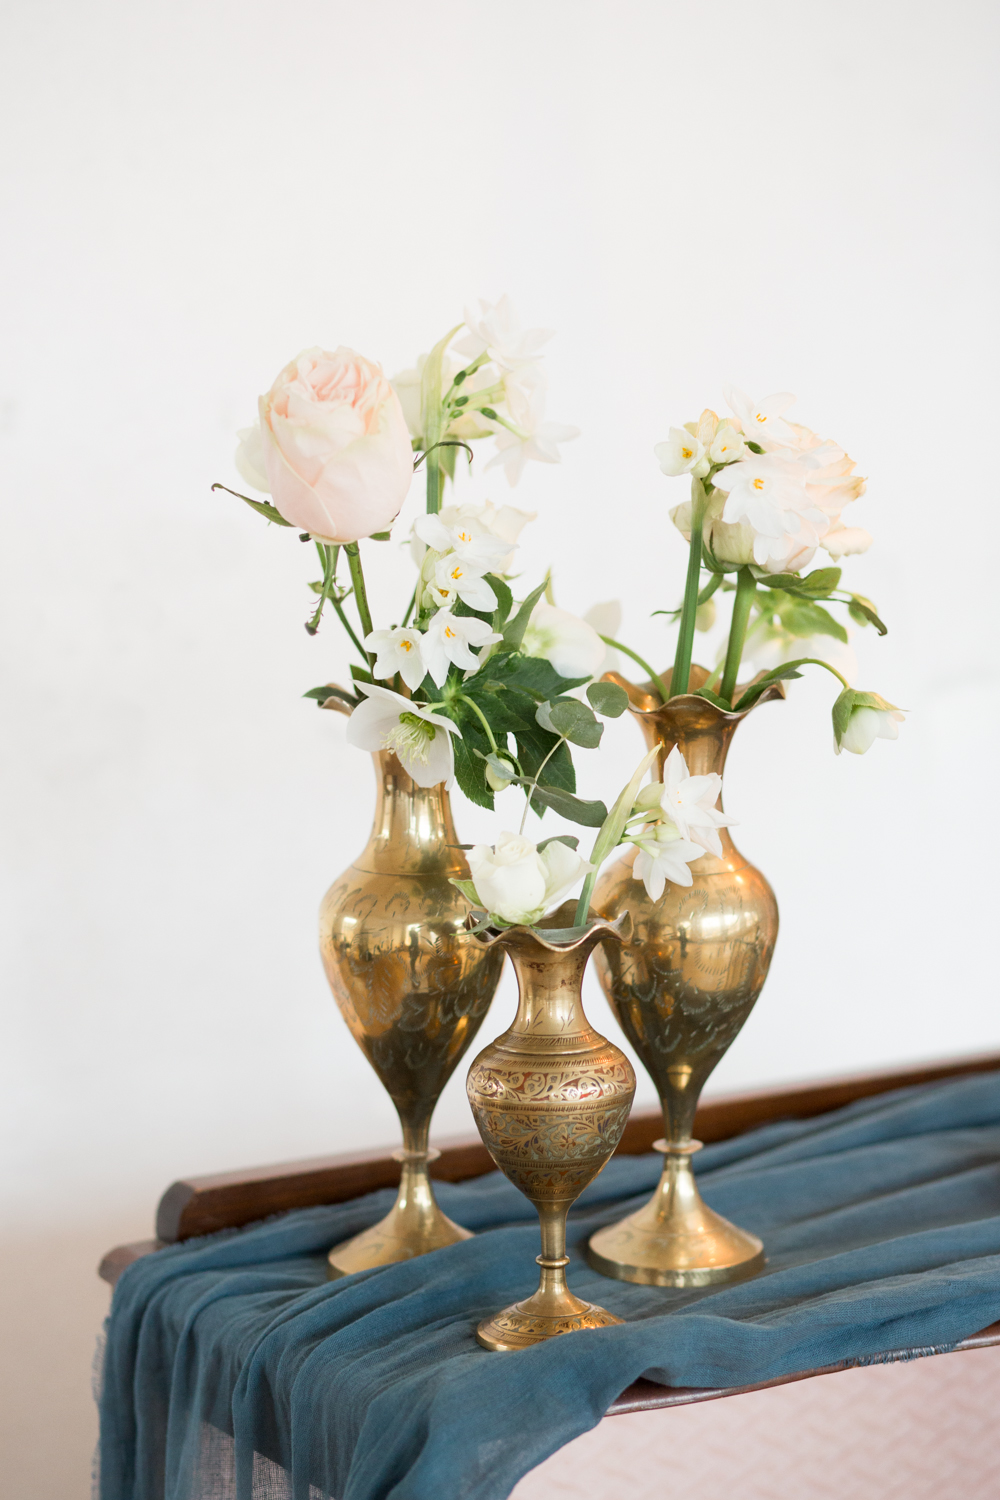 Brass Vases: From £2.00